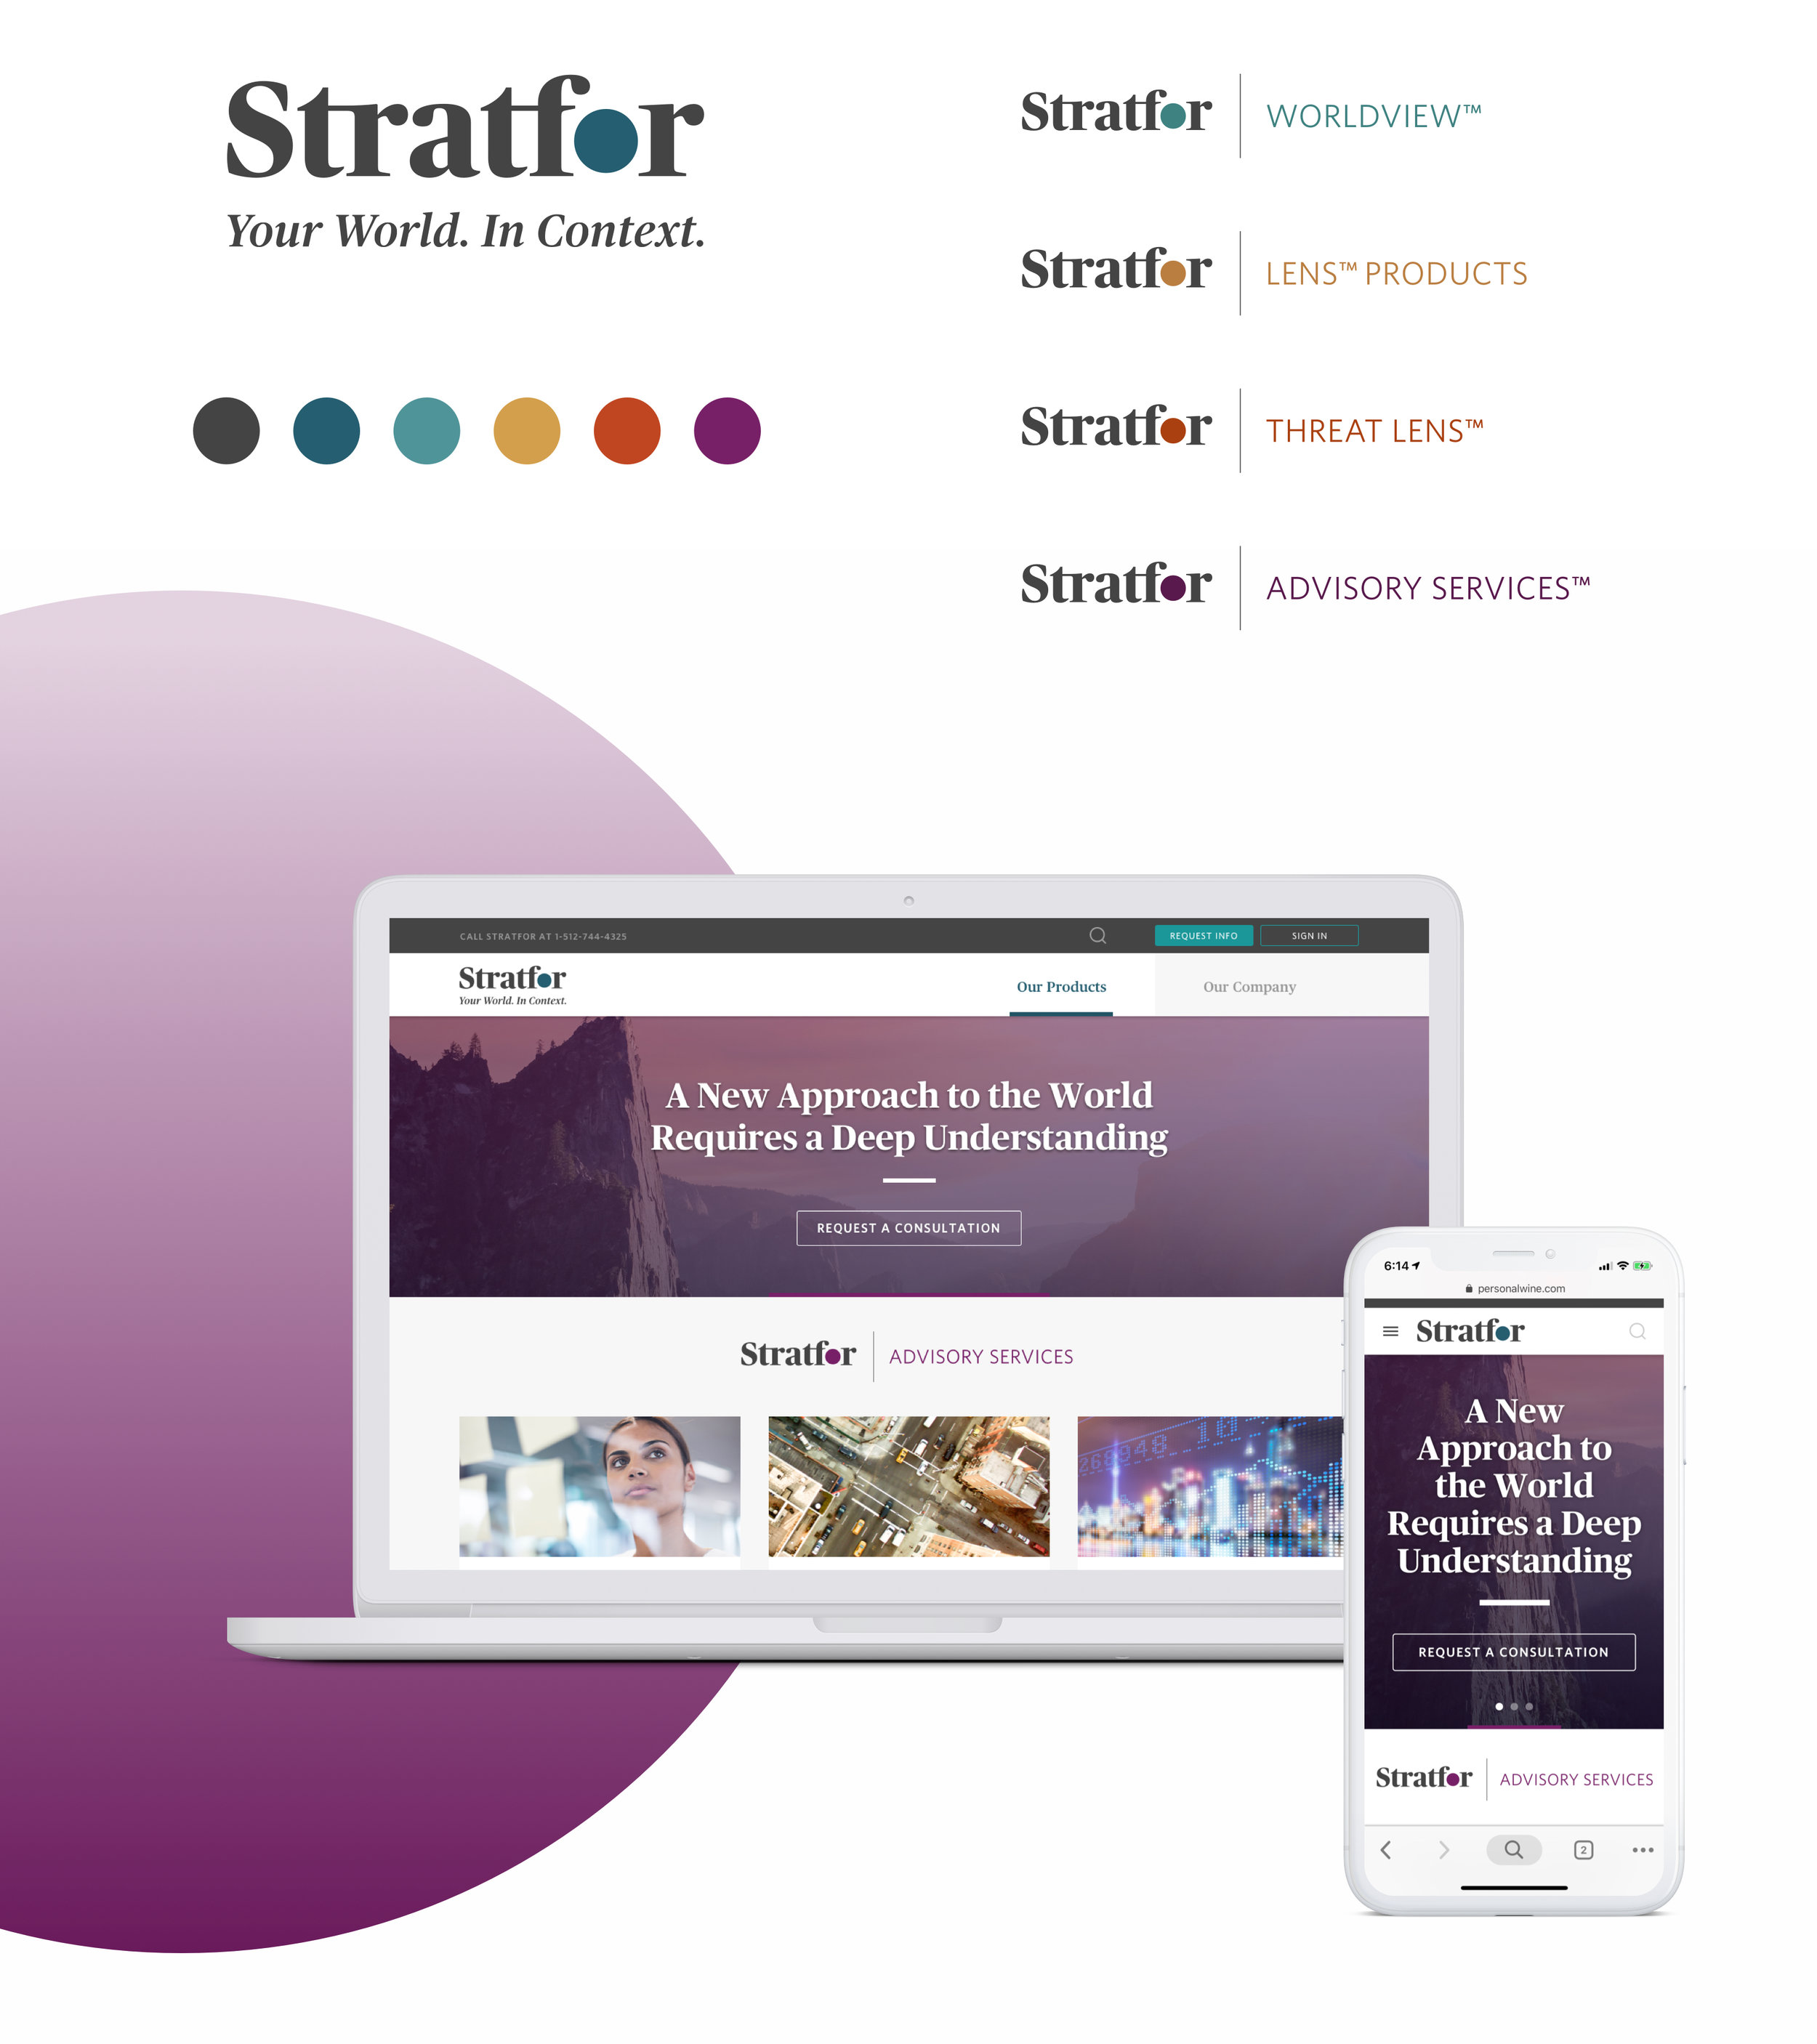 stratfor_02-as-mobile@2x.jpg